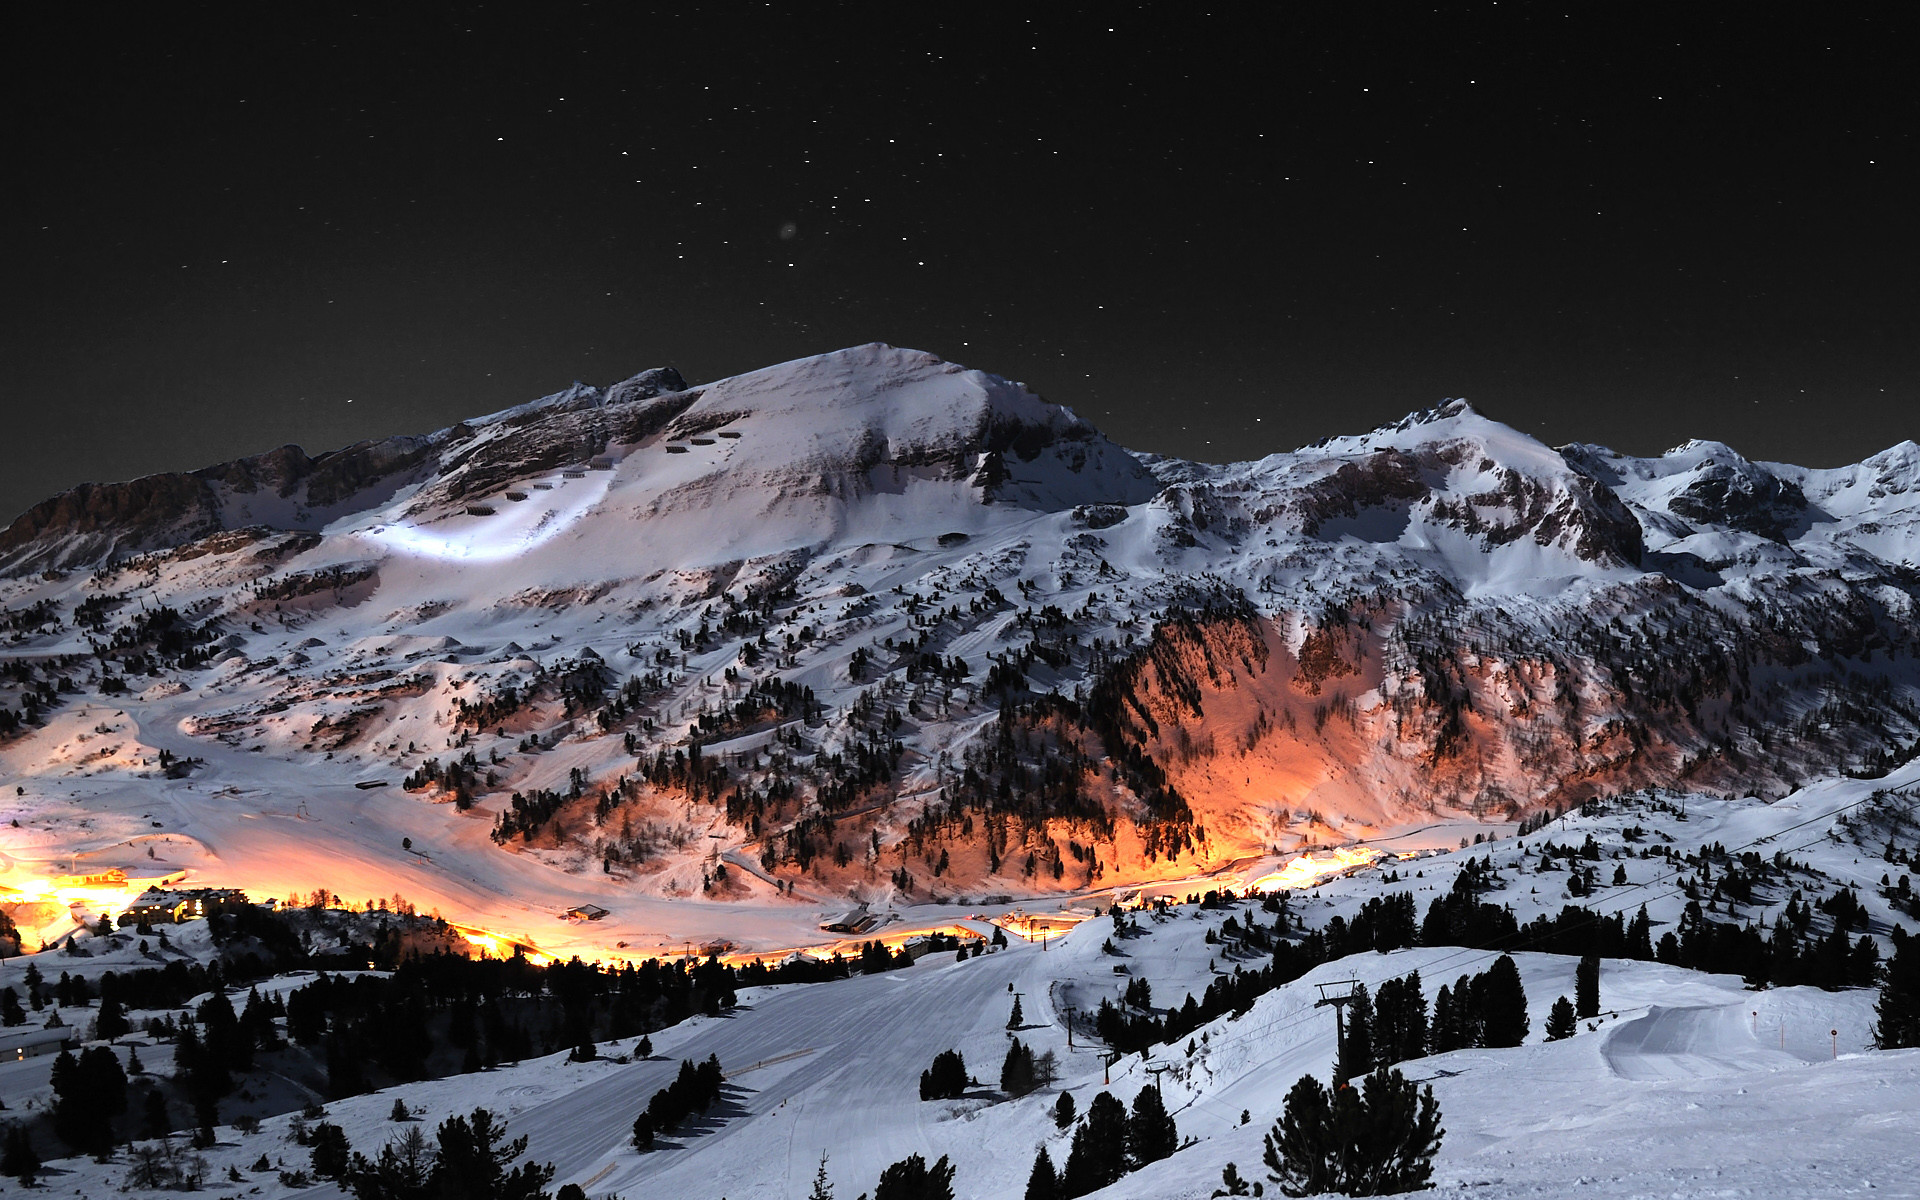 1920x1200 Mountain Wallpaper | Snow Mountains Desktop Backgrounds, wallpaper, Snow  Mountains Desktop .